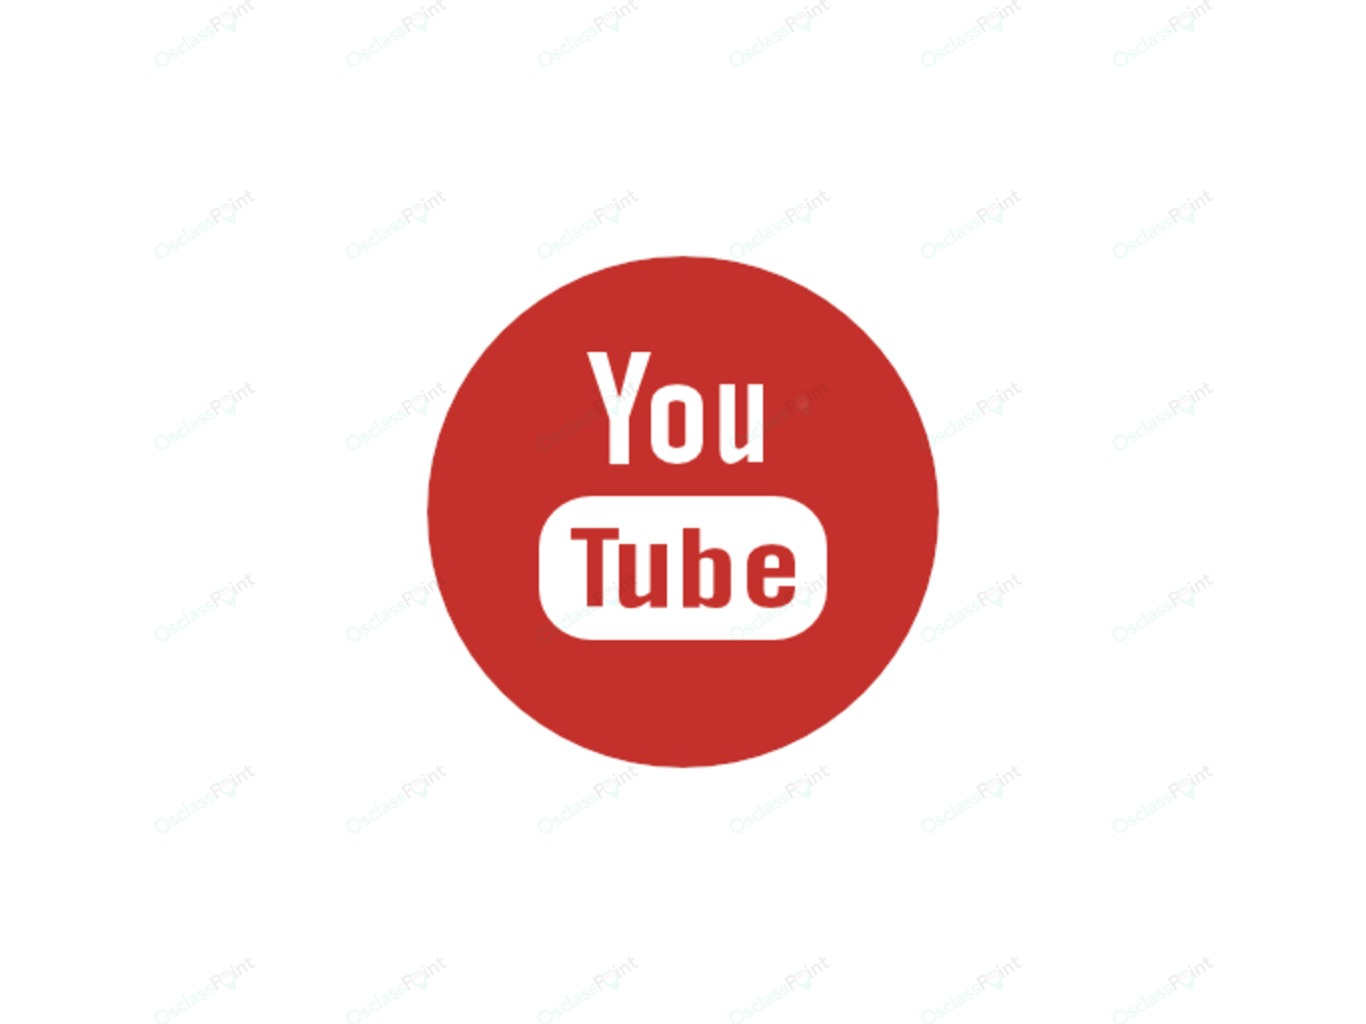 Osclass plugins - Youtube Video Osclass Plugin